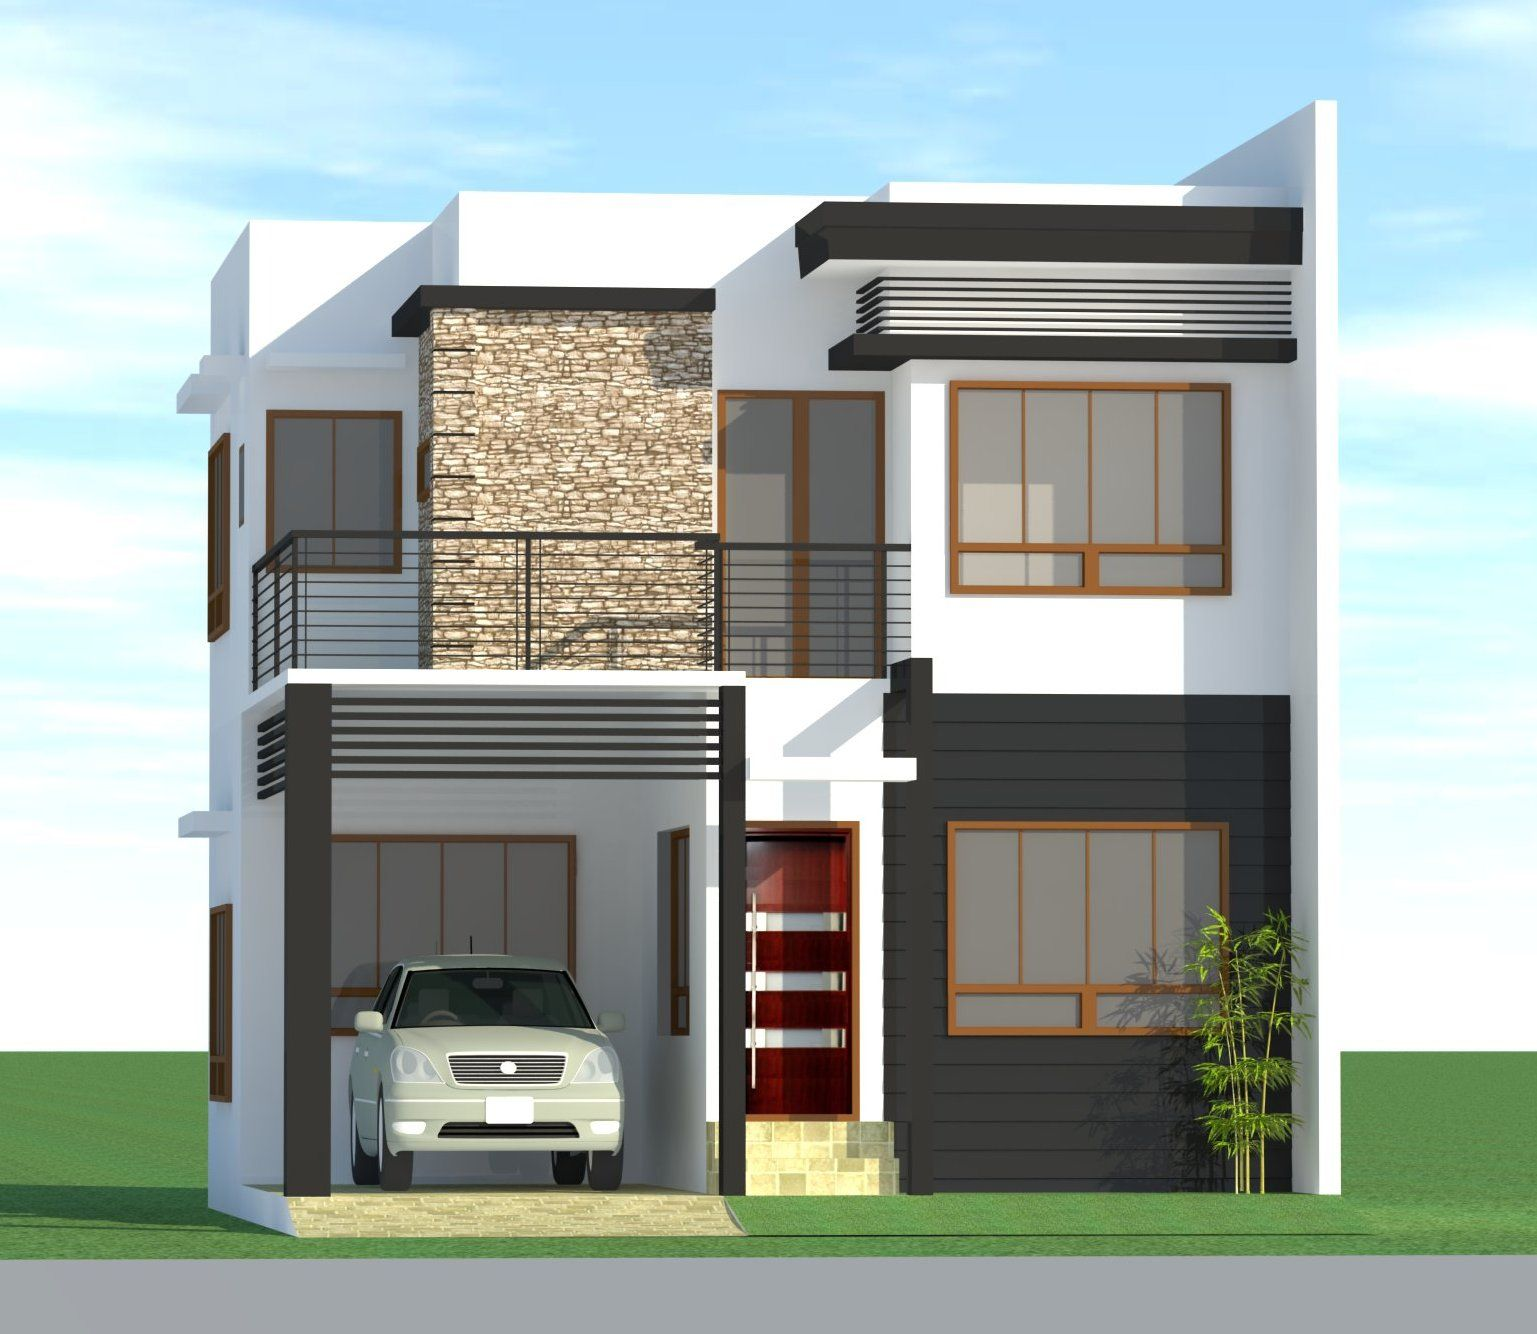 Marvellous Design Modern Architectural House Philippines 11 Small In The